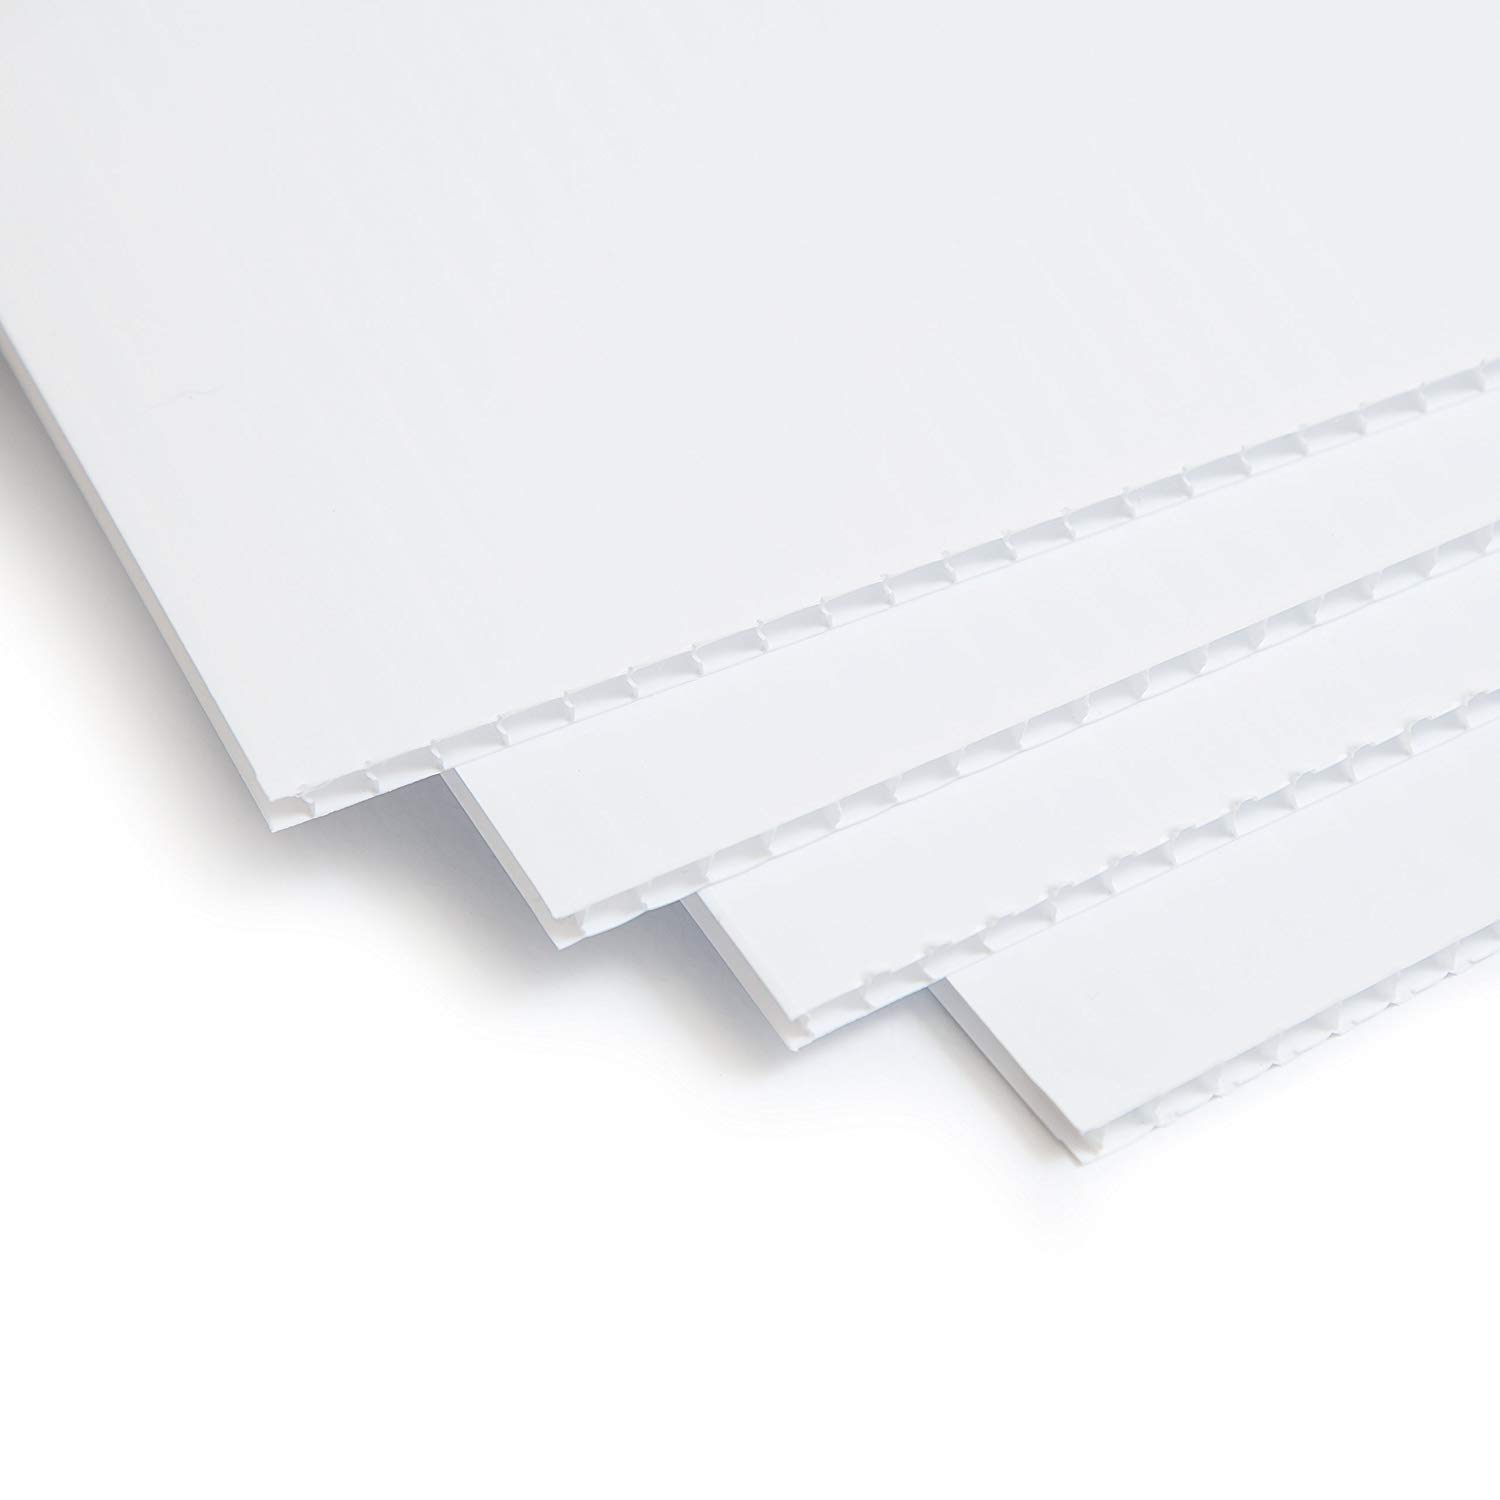 2 Pack White Corrugated Plastic Sheets 24 x 36 inch 2 Pack Blank Yard Signs Coroplast Sheets Plastic Panels for A-Frame Sidewalk Signs- Coroplast for Guinea Pig Cage